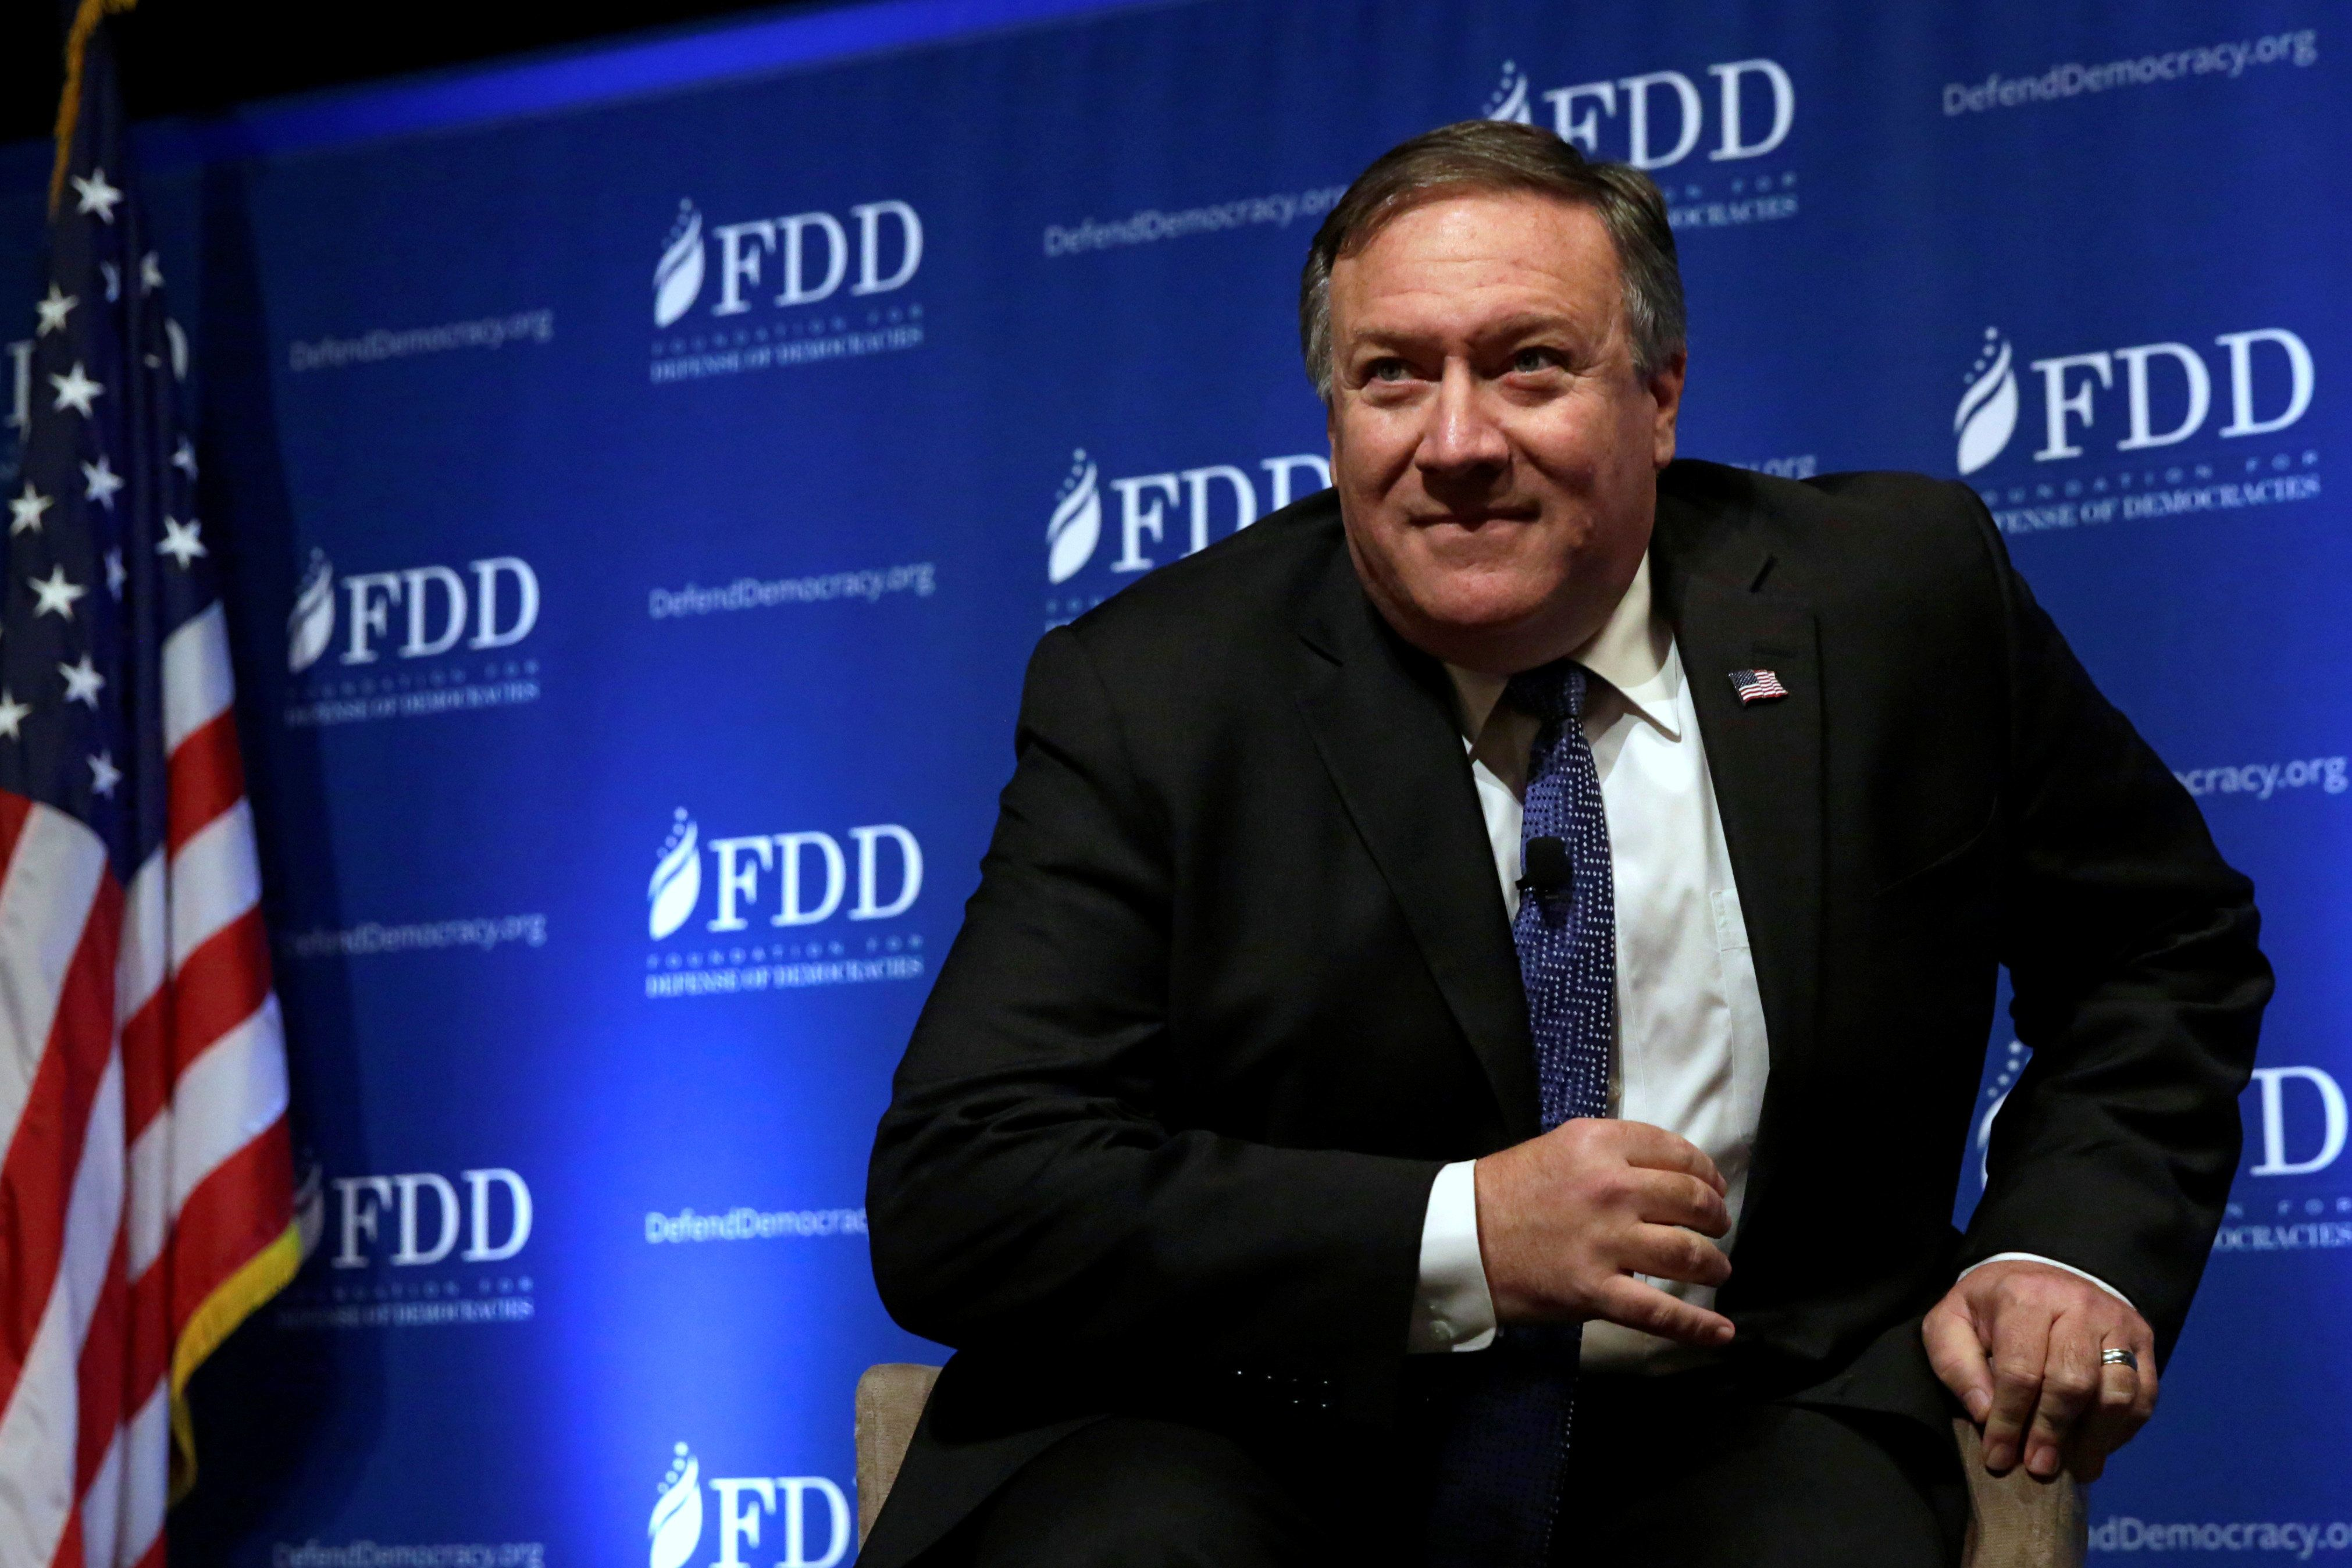 CIA Director Mike Pompeo has overseen U.S. intelligence collection in Yemen in a campaign closely intertwined with the U